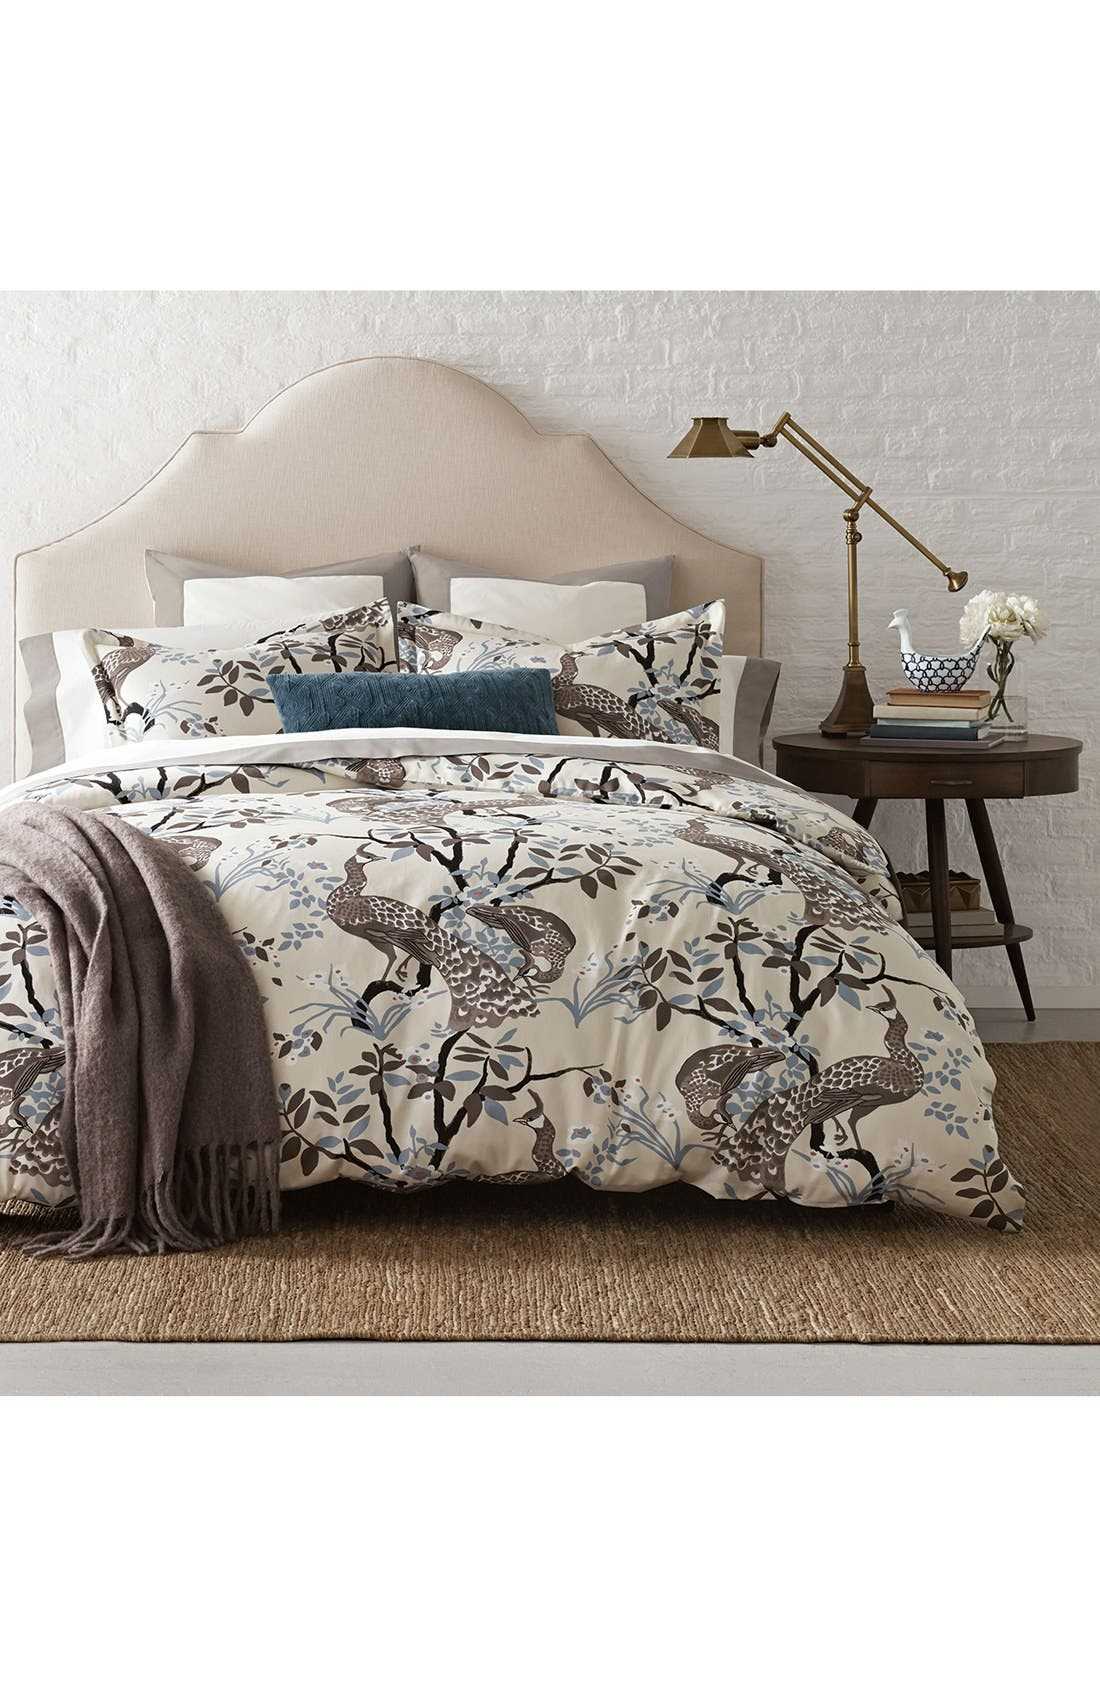 DwellStudio 'Peacock' Duvet Cover